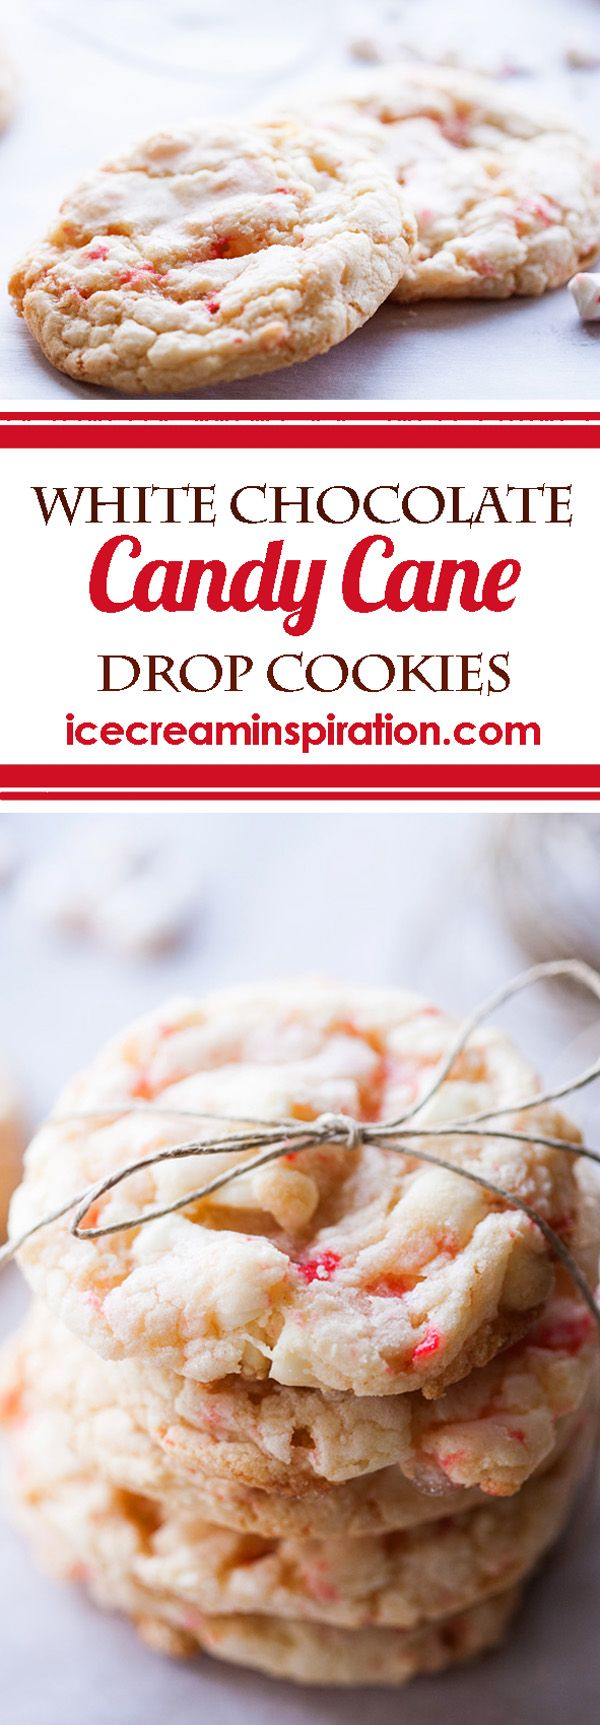 White Chocolate Candy Cane Drop Cookies